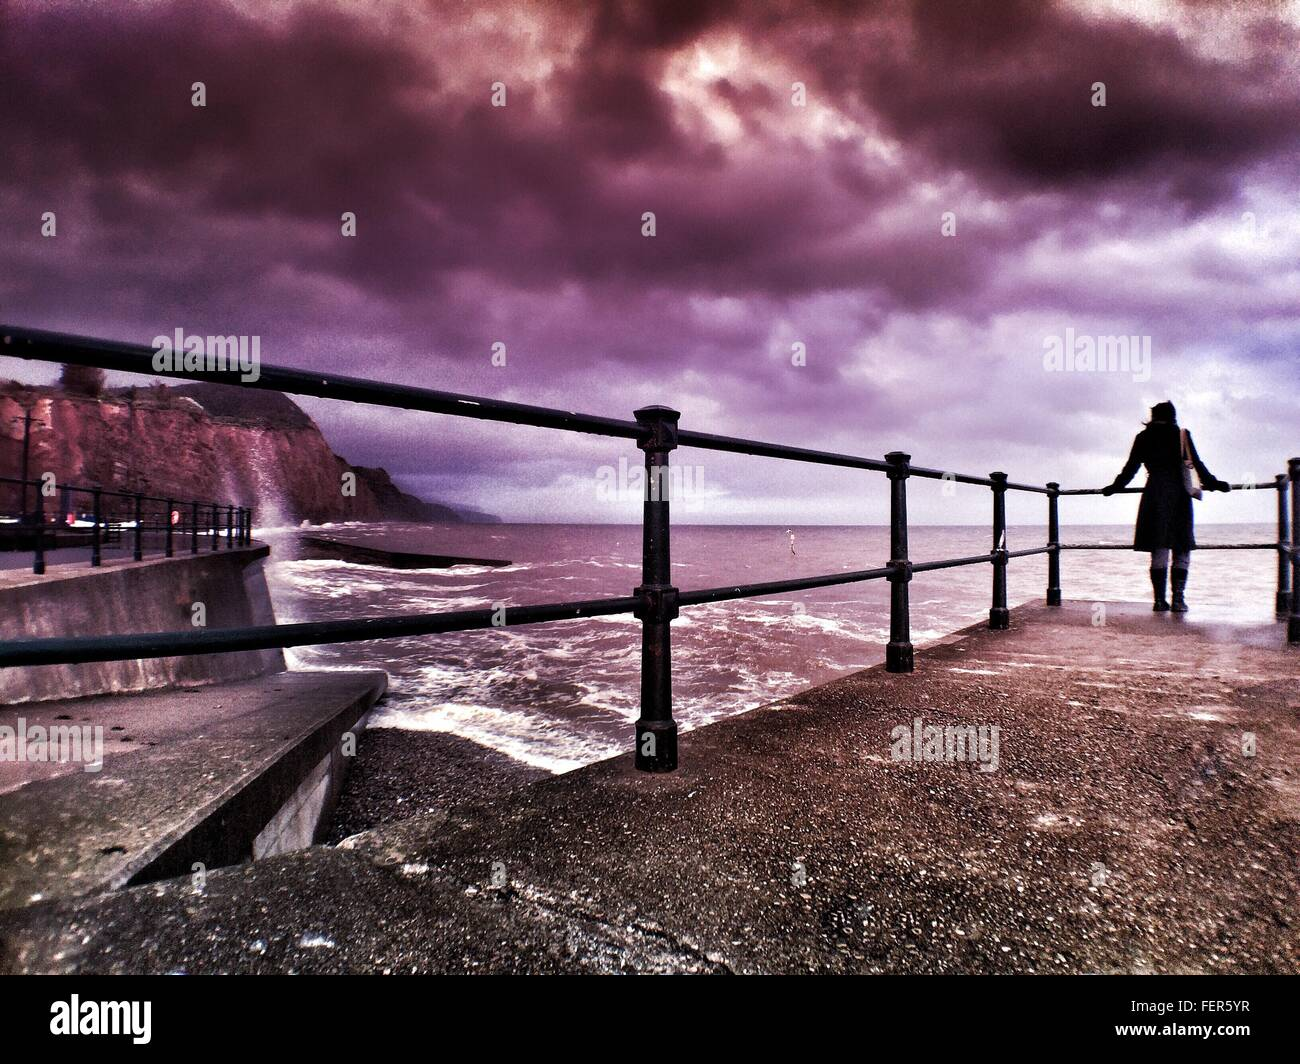 Rare View Of Woman Standing On Observation Point At Jurassic Coast - Stock Image